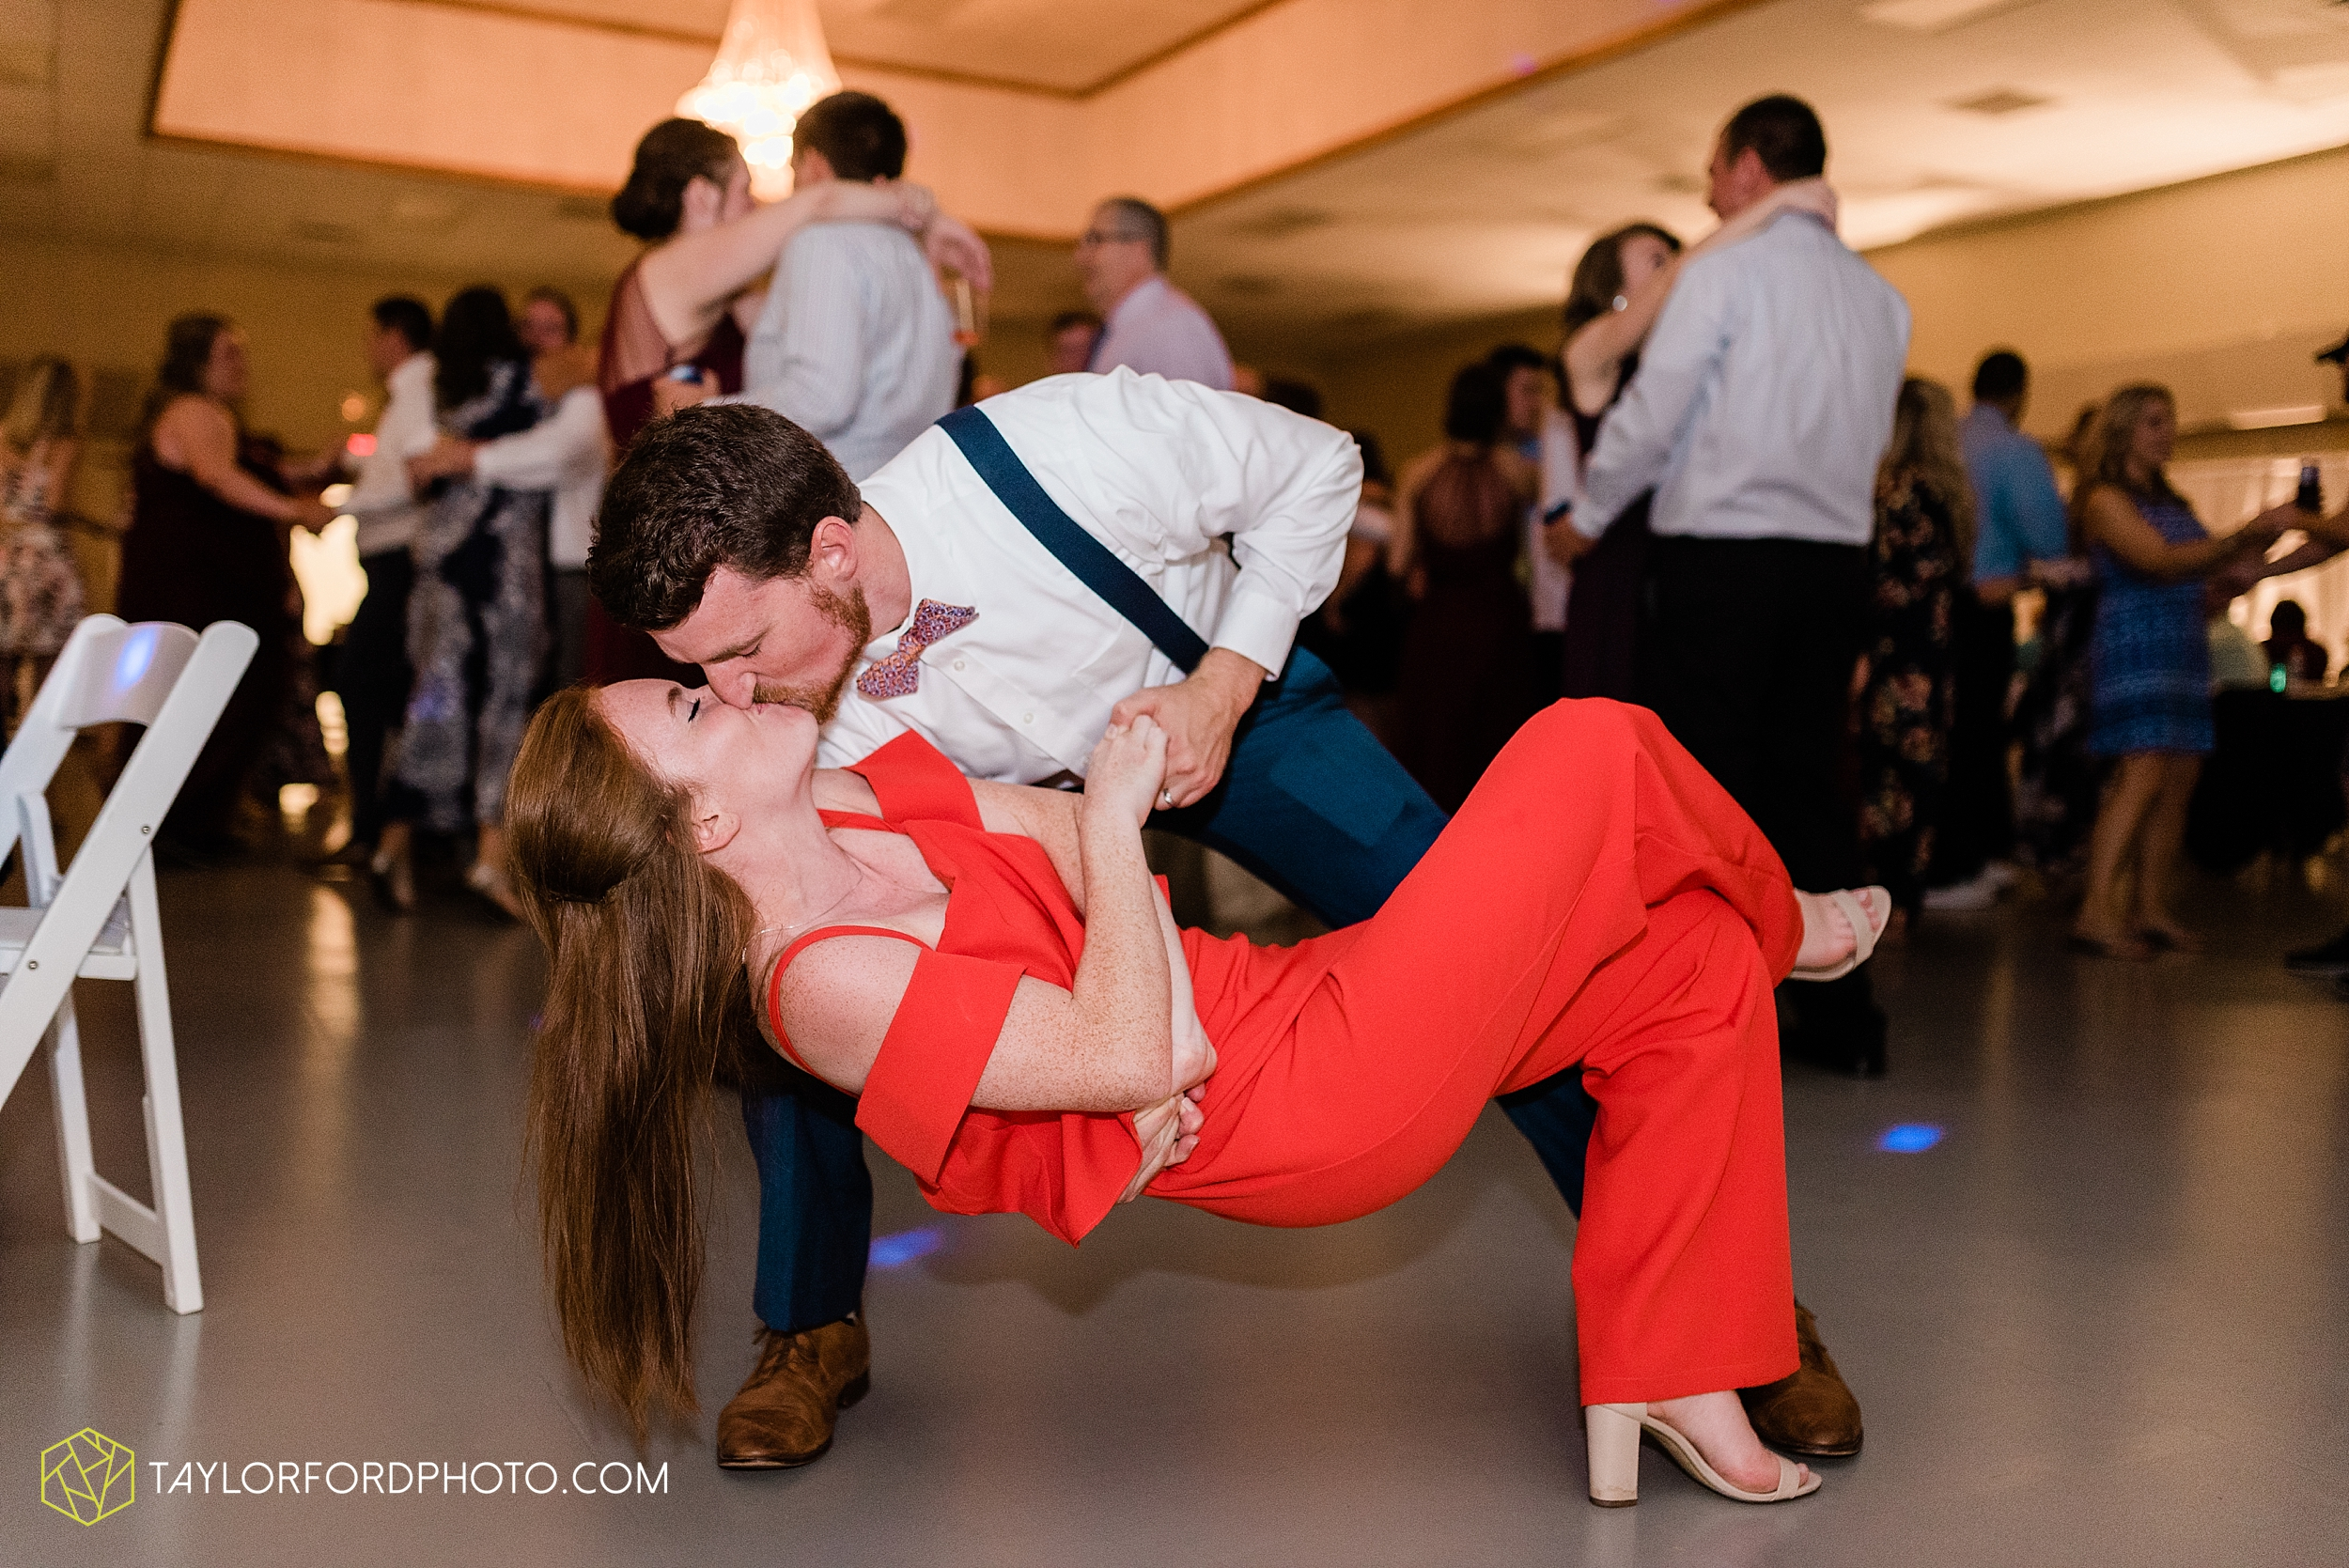 gayle-rayman-mike-steele-ottoville-ohio-wedding-immaculate-conception-parish-center-wedding-sycamore-lake-winery-wannamachers-photographer-taylor-ford-photography_0459.jpg